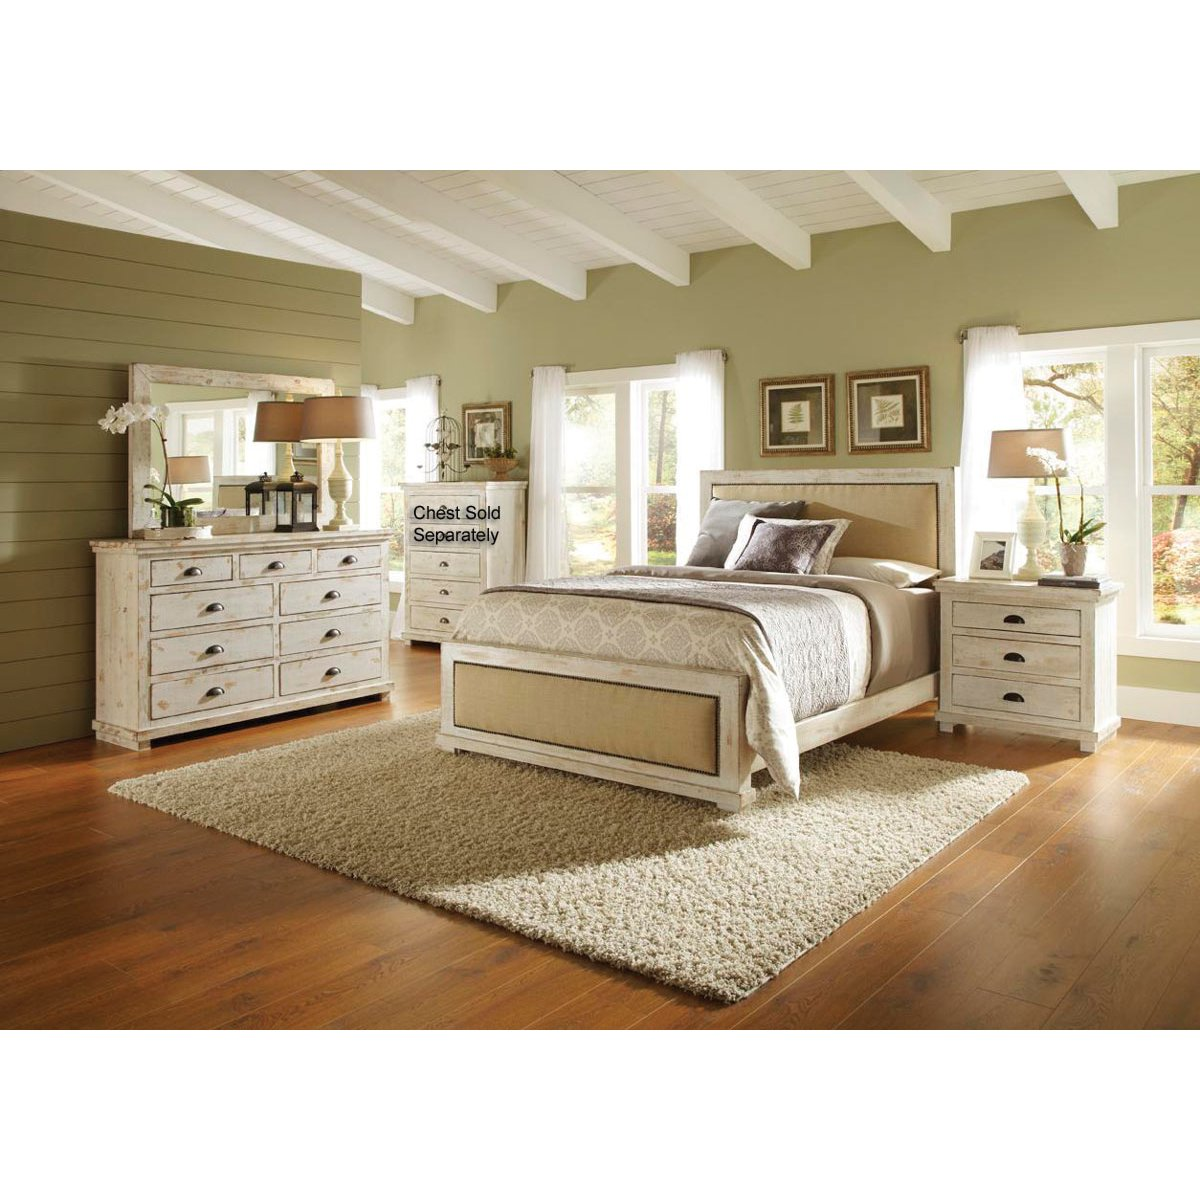 furnitu bedroom handmade frame eodg wood fullxfull queen il furniture products bed king cal california